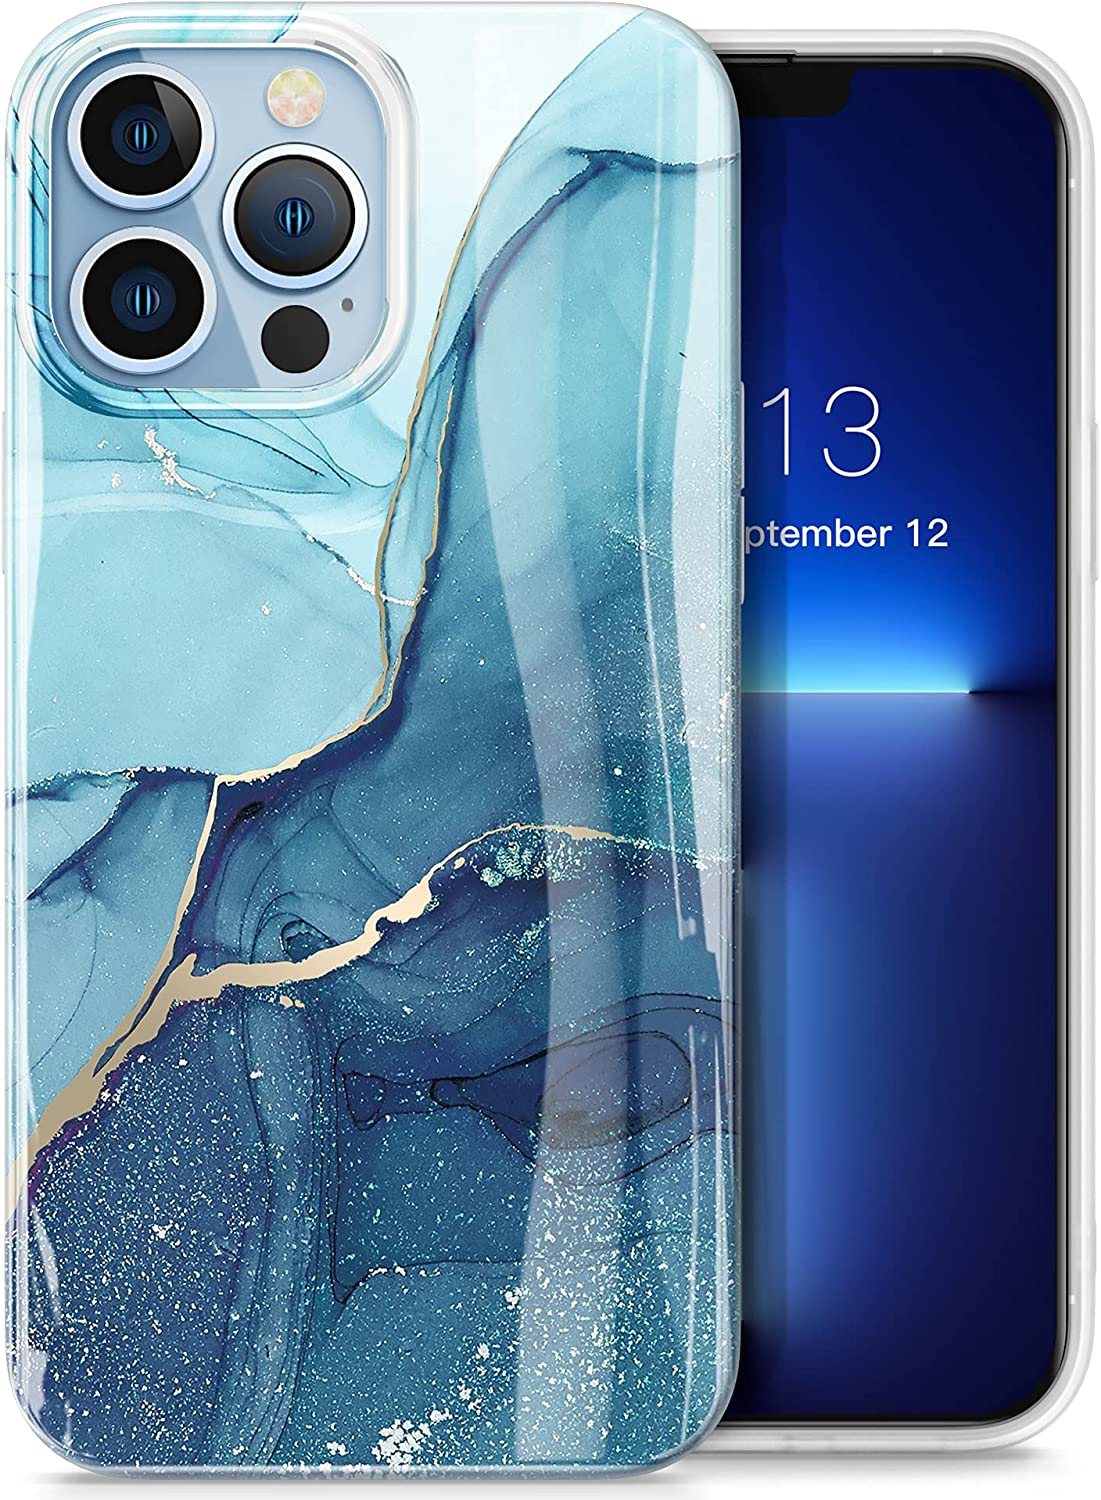 GVIEWIN Case Compatible with iPhone 13 Pro Case 6.1 Inch 2021, Marble Phone Case Slim Glossy Soft TPU Shockproof Protective Cover for Women Girl Stylish Phone Cases Covers(Stray Stars/Blue)